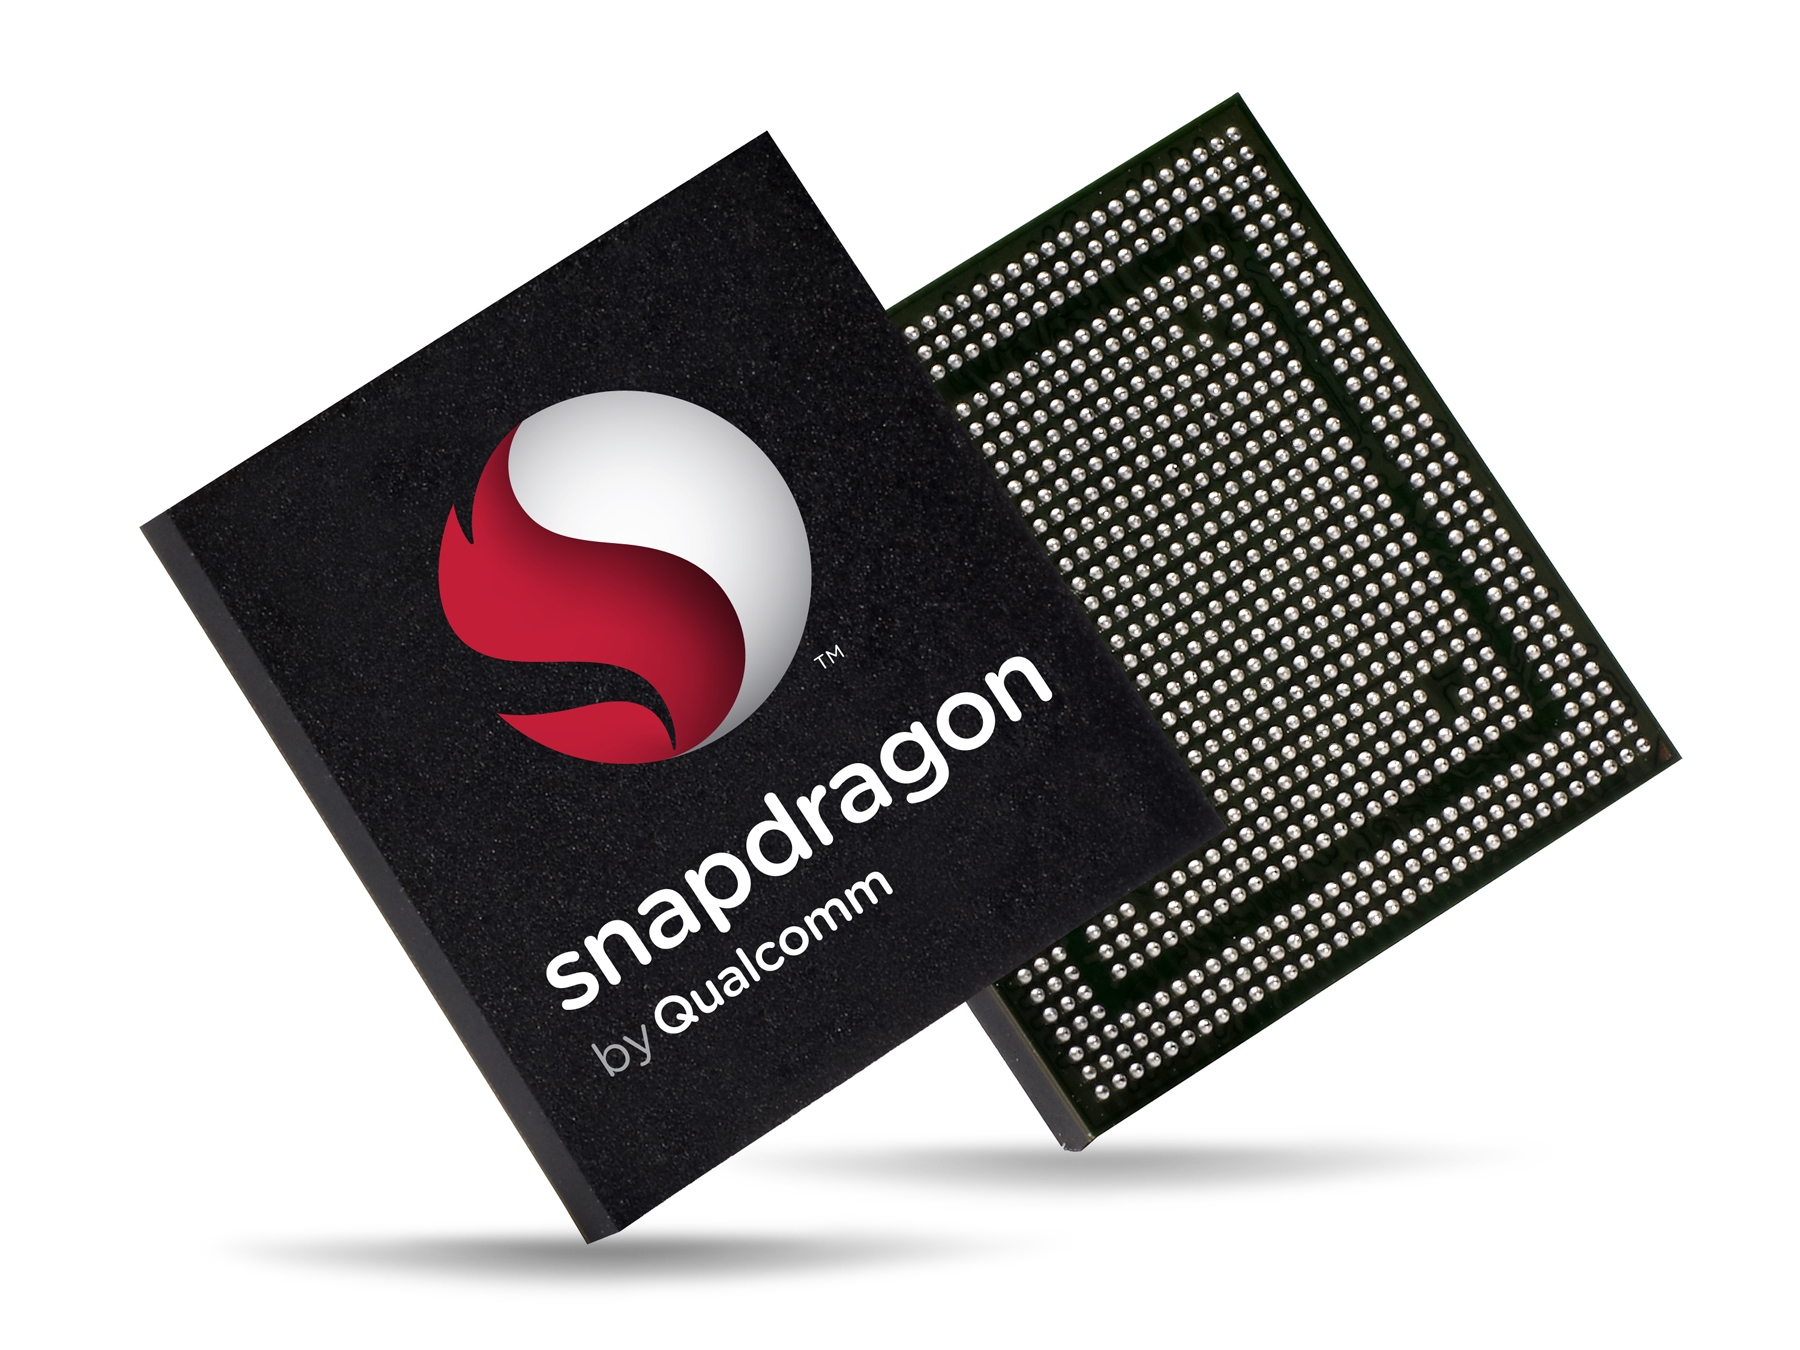 Snapdragon 845 powered Chromebooks